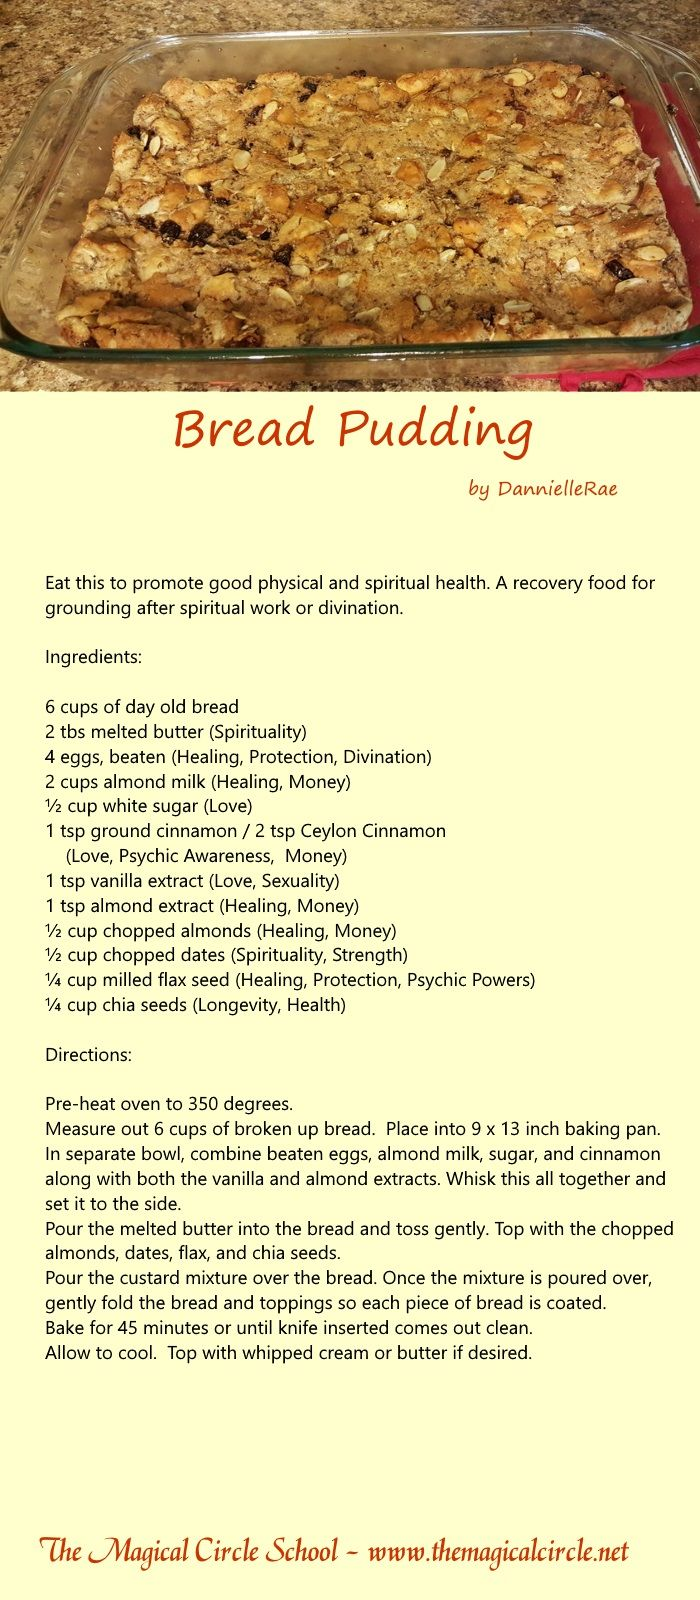 Kitchen Witch Health Spell Grounding Spiritual Health By DannielleRae The